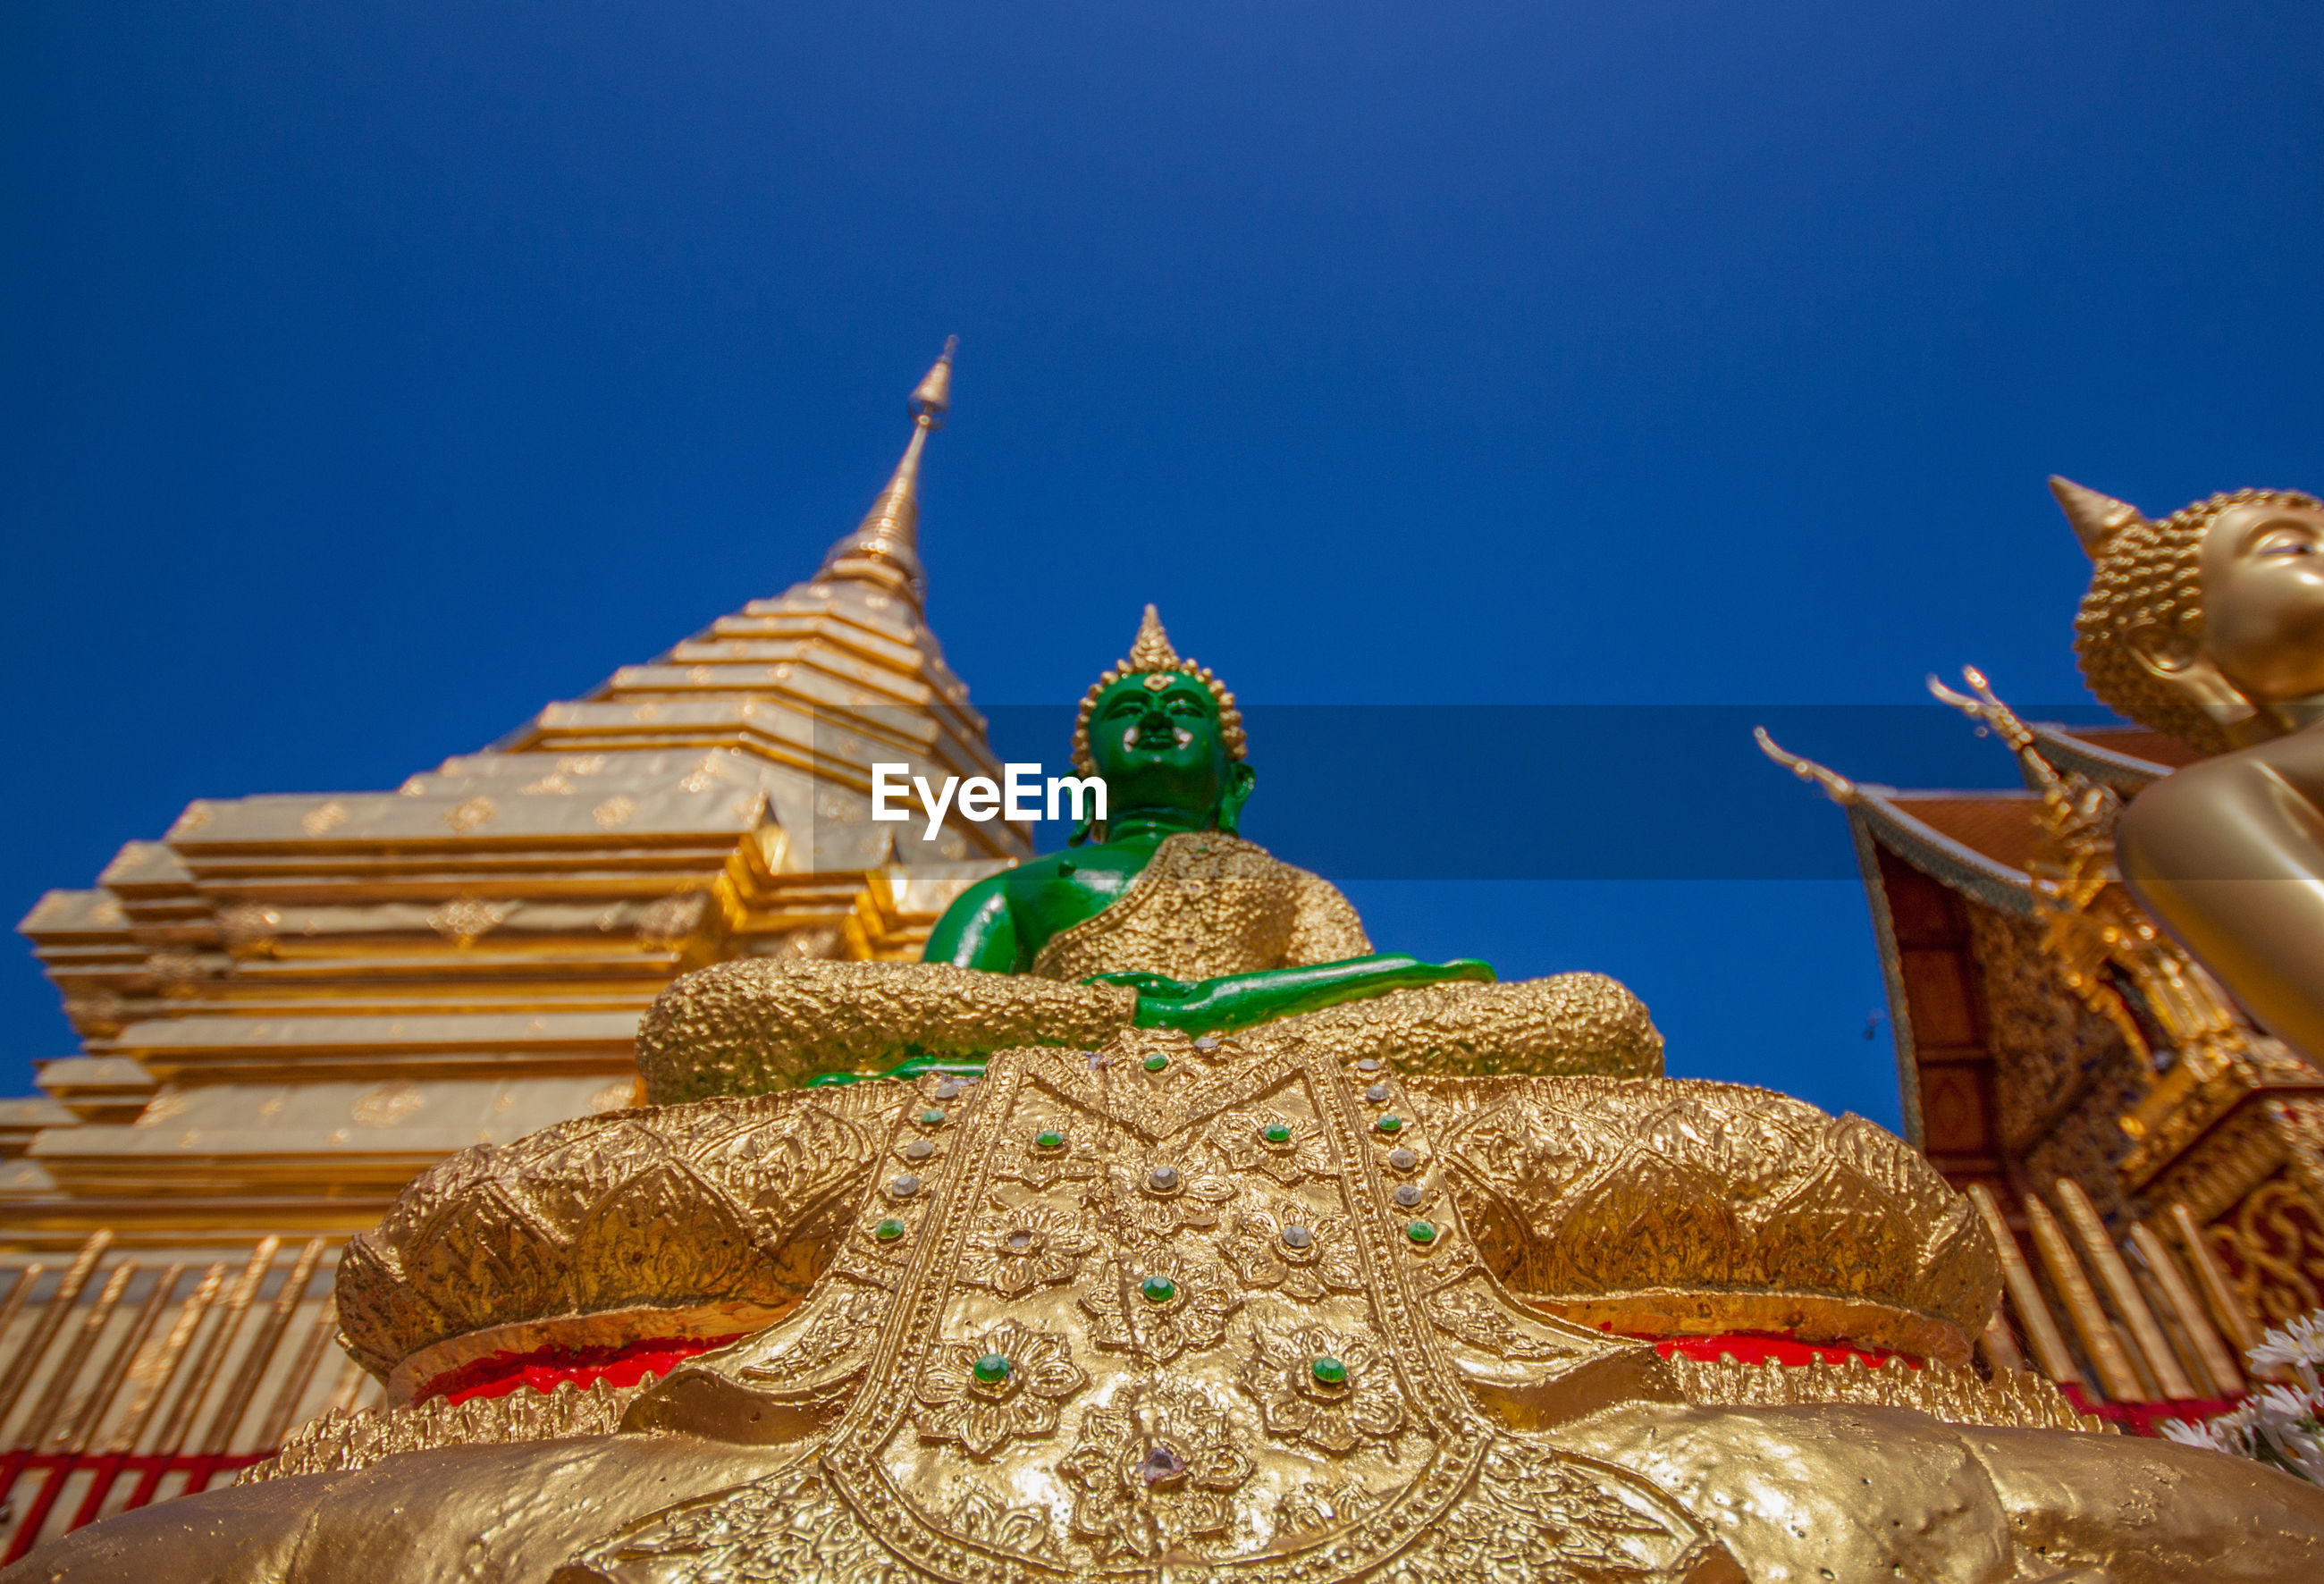 Low angle view of buddha statue by temple against clear blue sky during sunny day